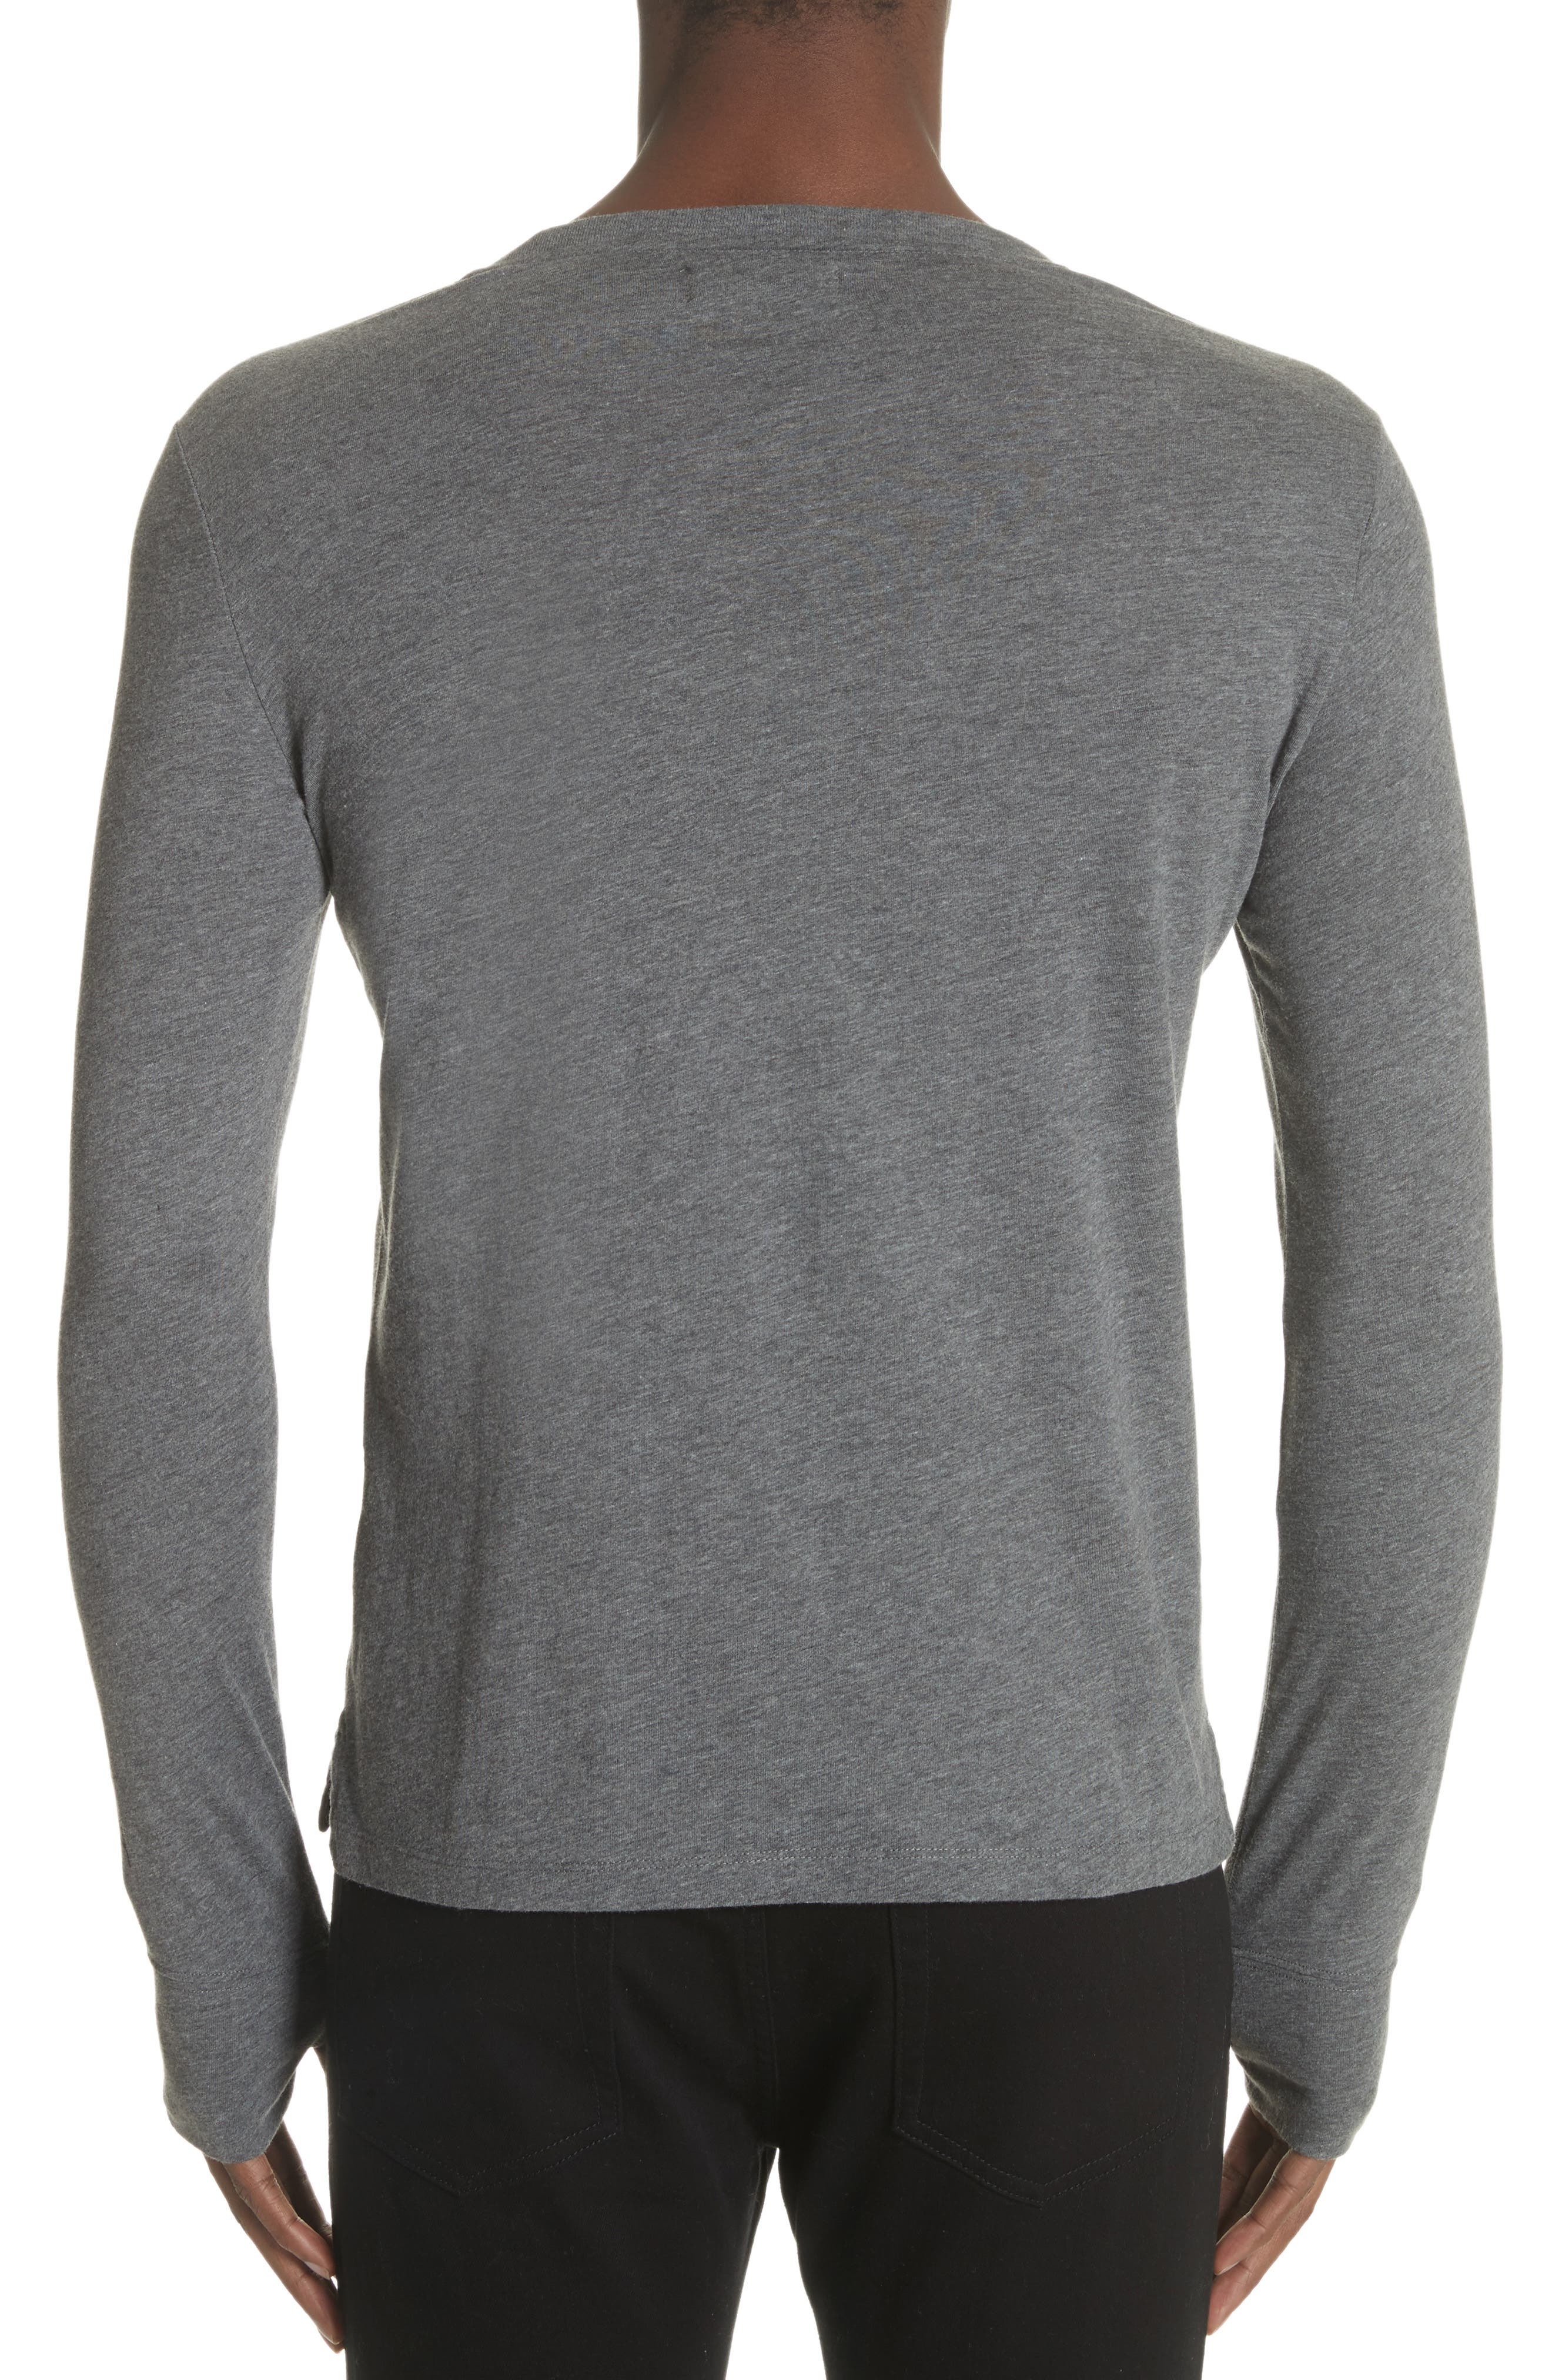 Marchston Regular Fit Crewneck Shirt,                             Alternate thumbnail 2, color,                             031